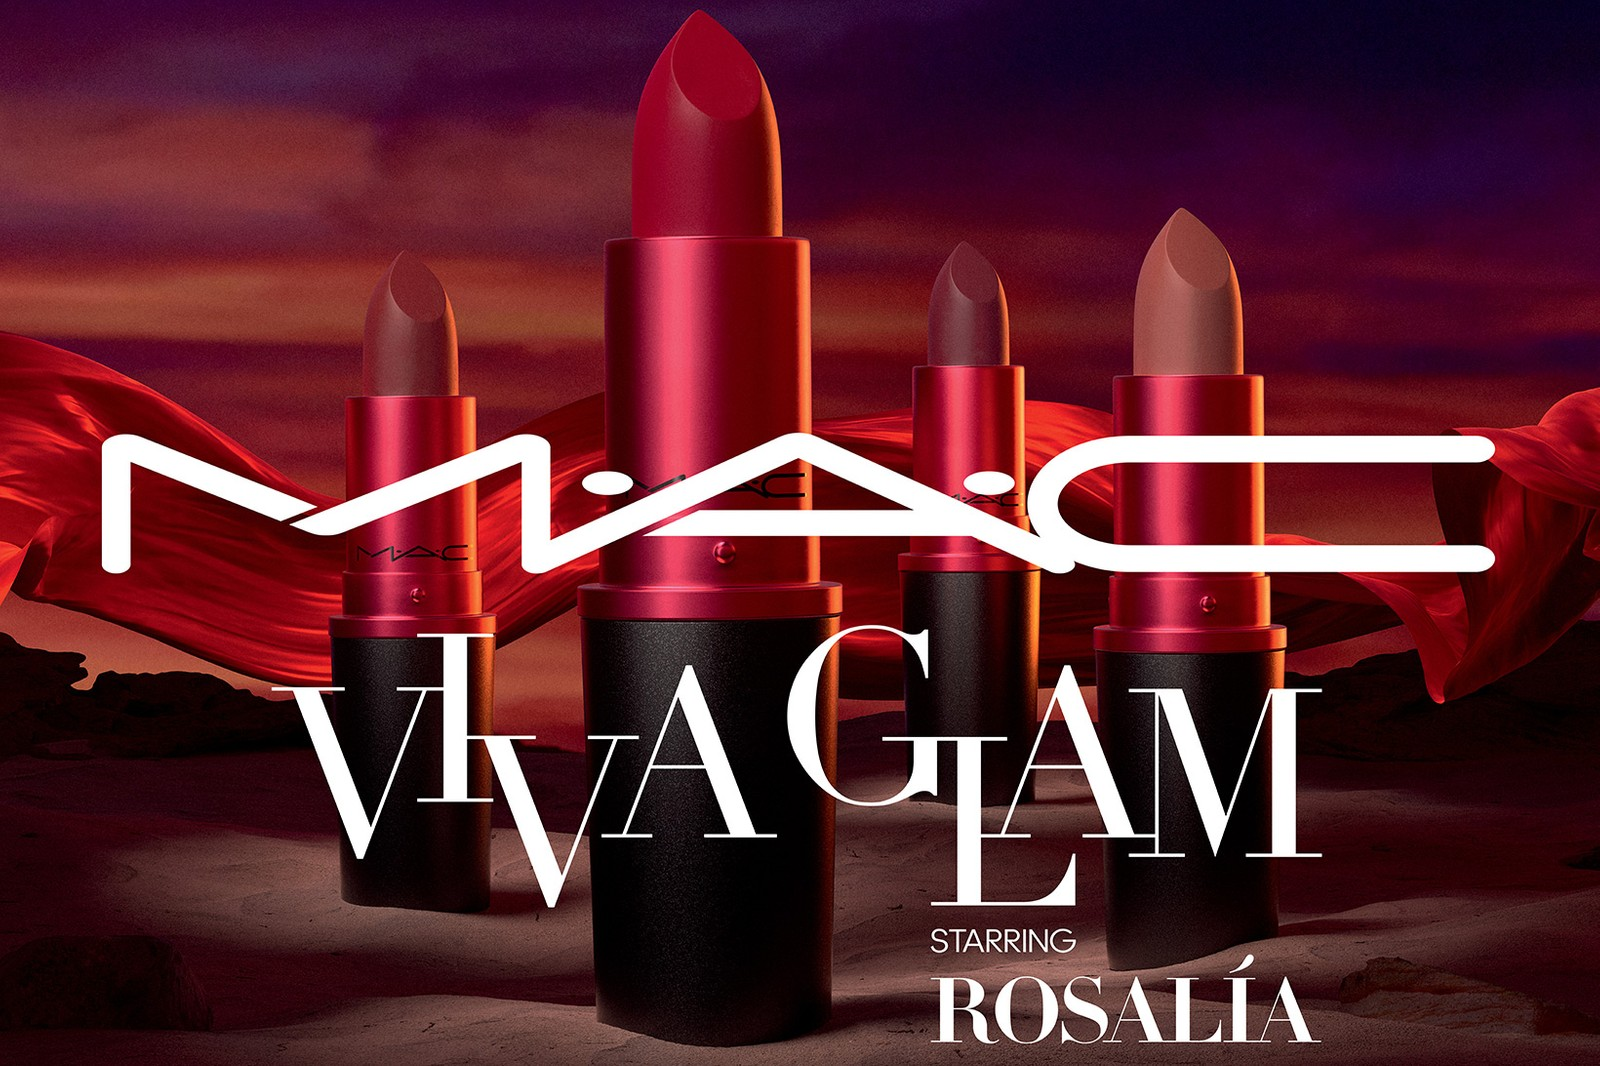 rosalia mac cosmetics viva glam vg26 ambassador lipsticks matte red lgbtq hiv aids charity